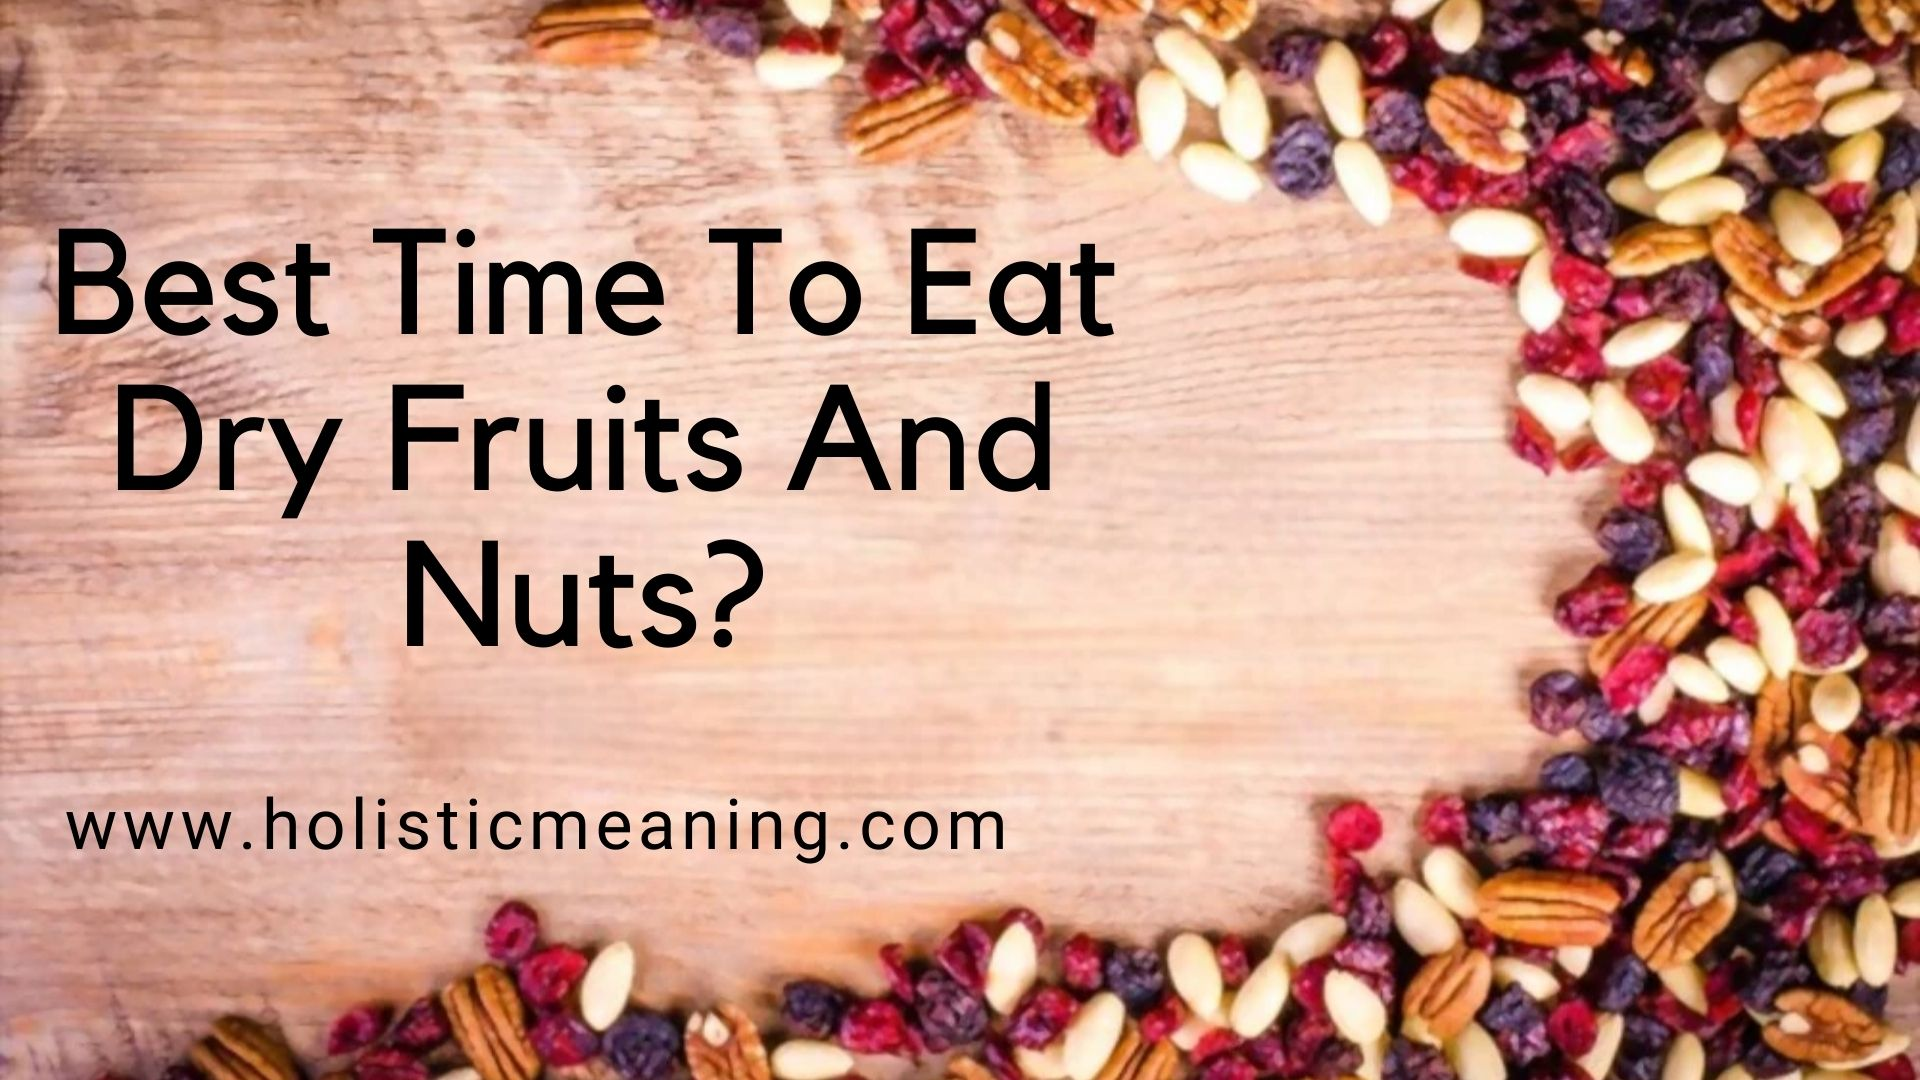 Best Time To Eat Dry Fruits And Nuts?